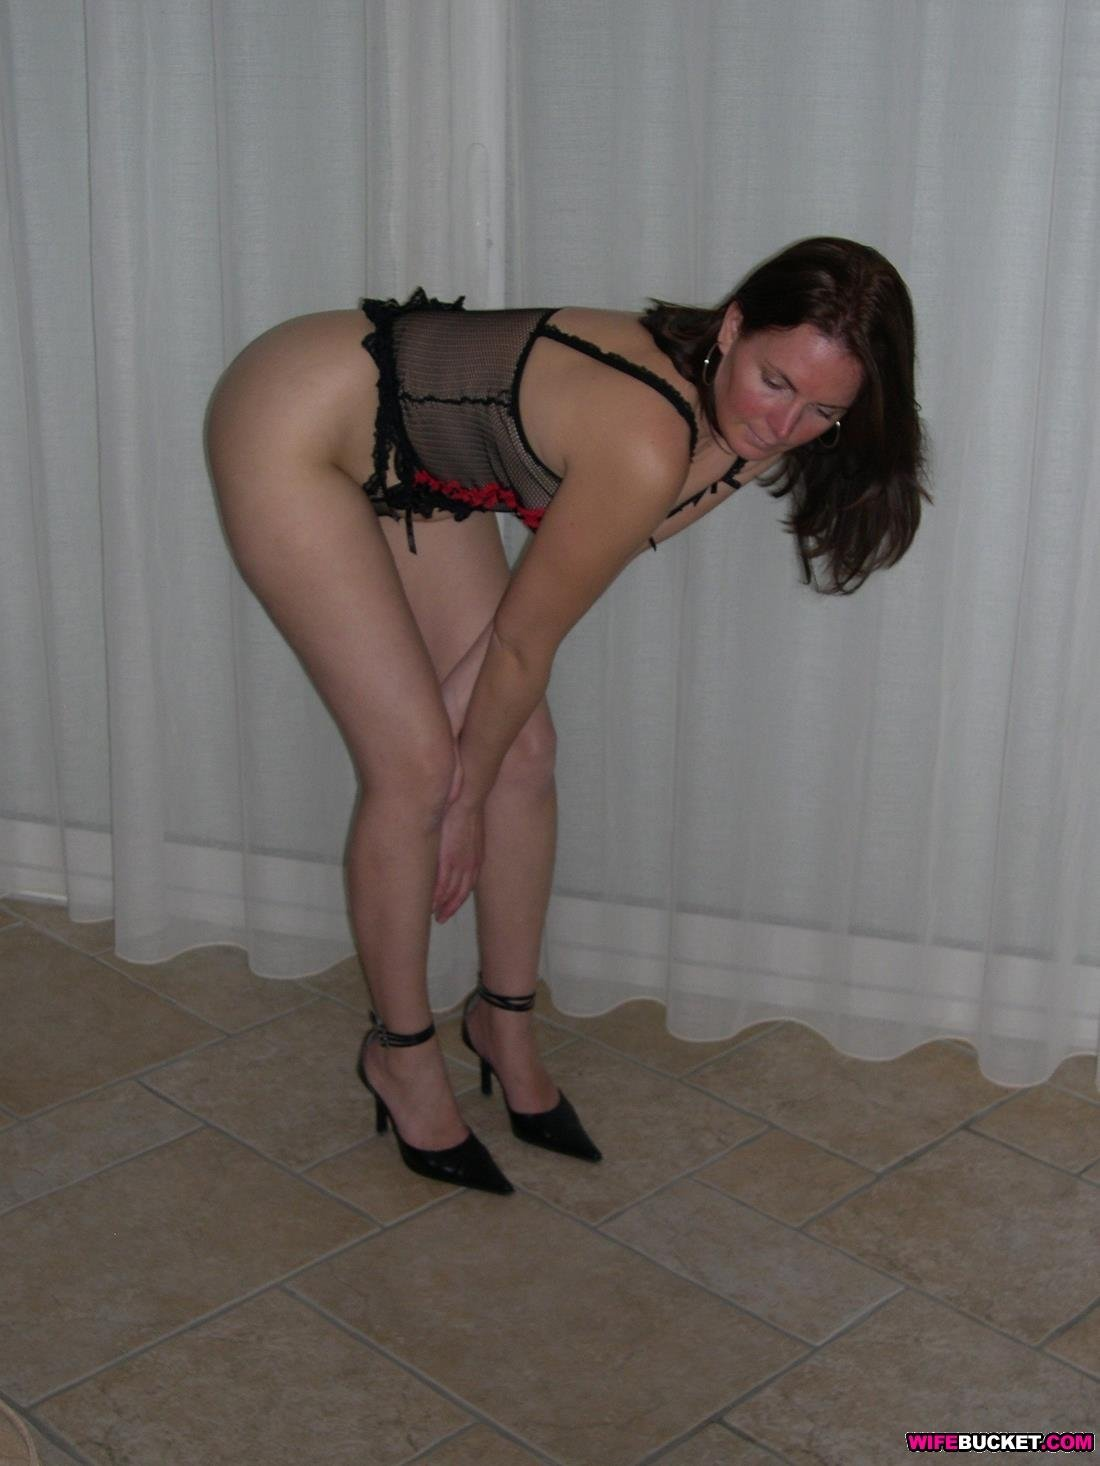 Perfect grey eyes girl striptease - more at Cams228.com authoritative answer